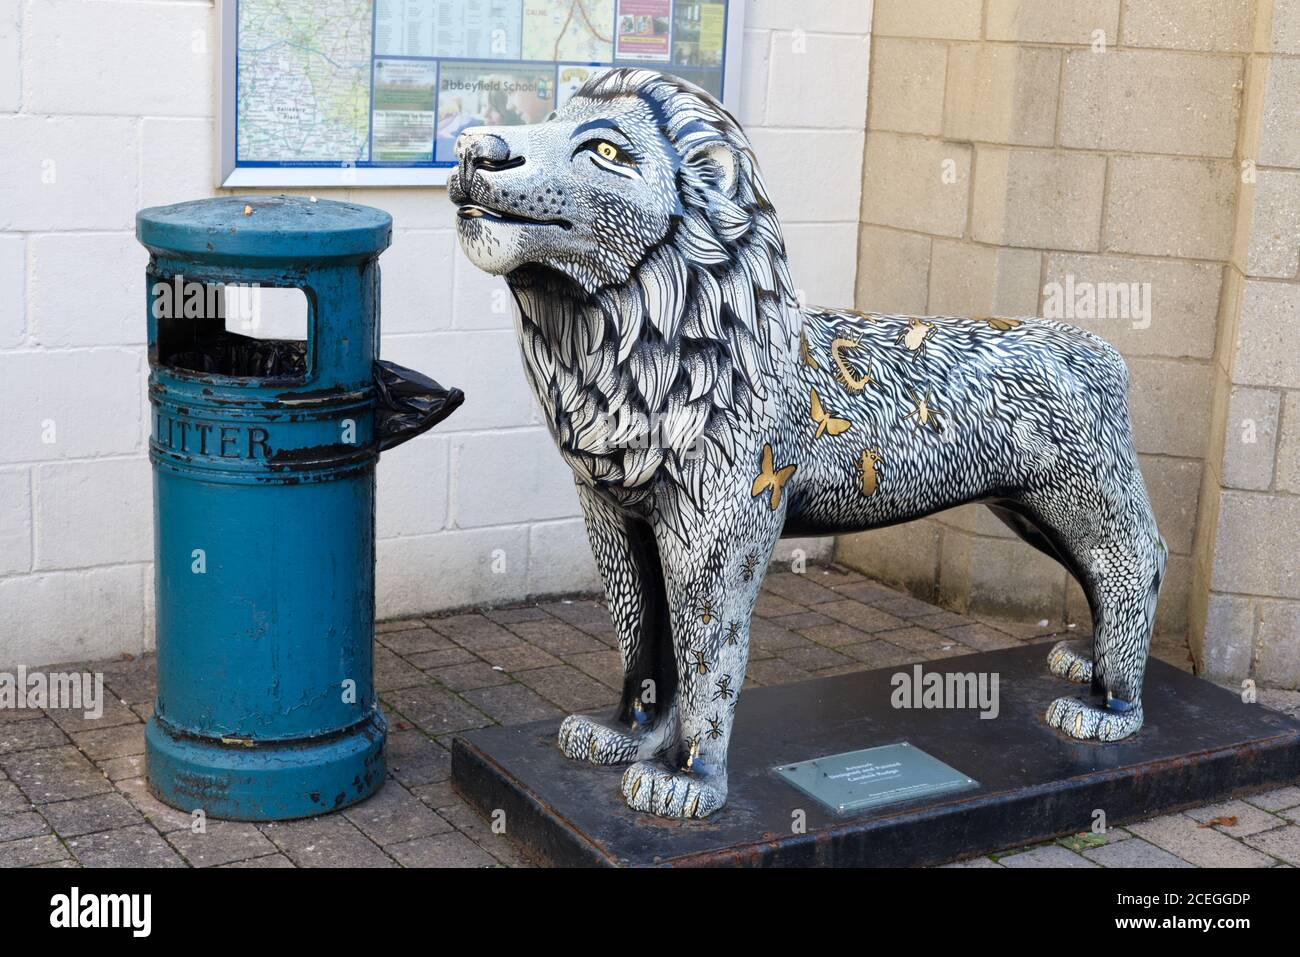 Lion sculpture in historic street and buildings in town centre of Corsham, Wiltshire, England, UK Stock Photo